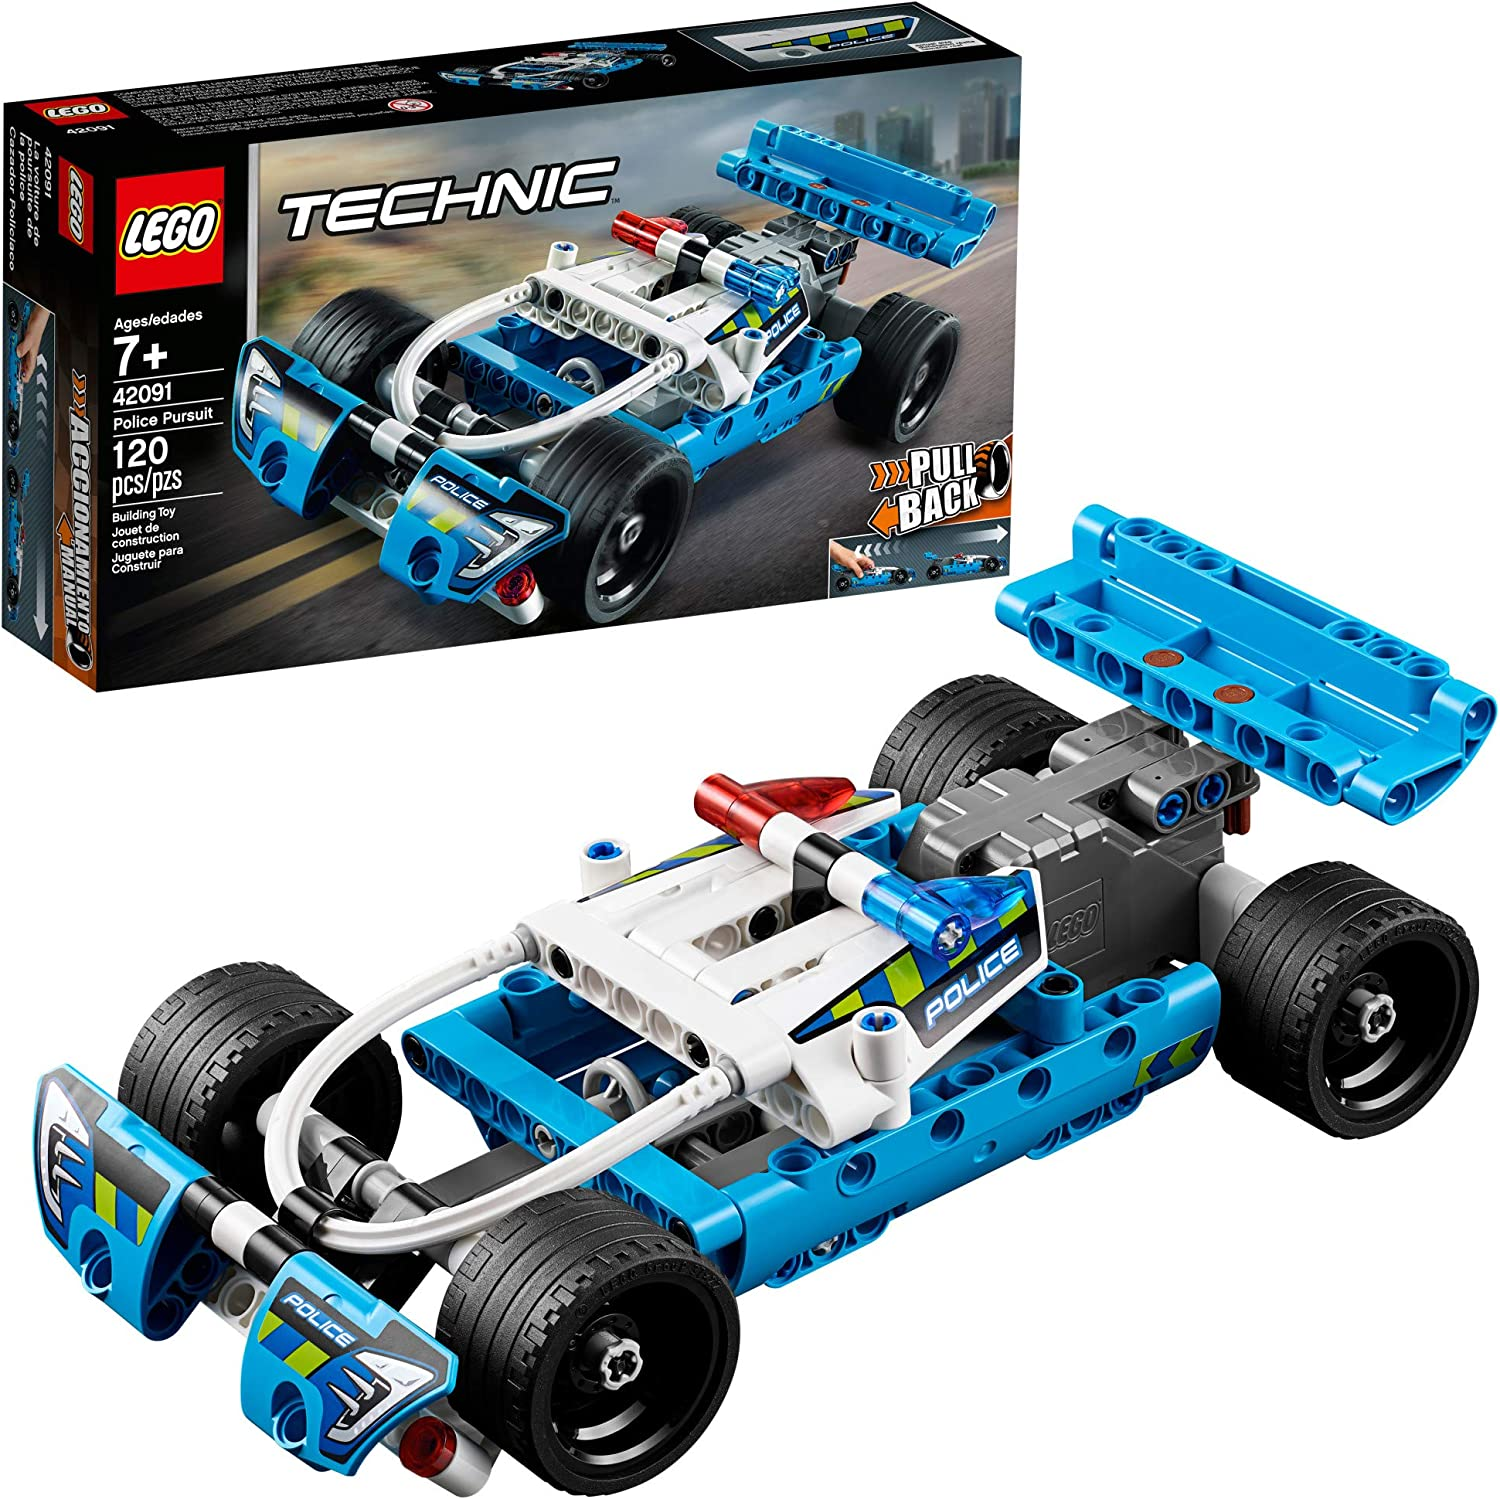 LEGO 42091 Technic Police Pursuit Set with Pullback Motor